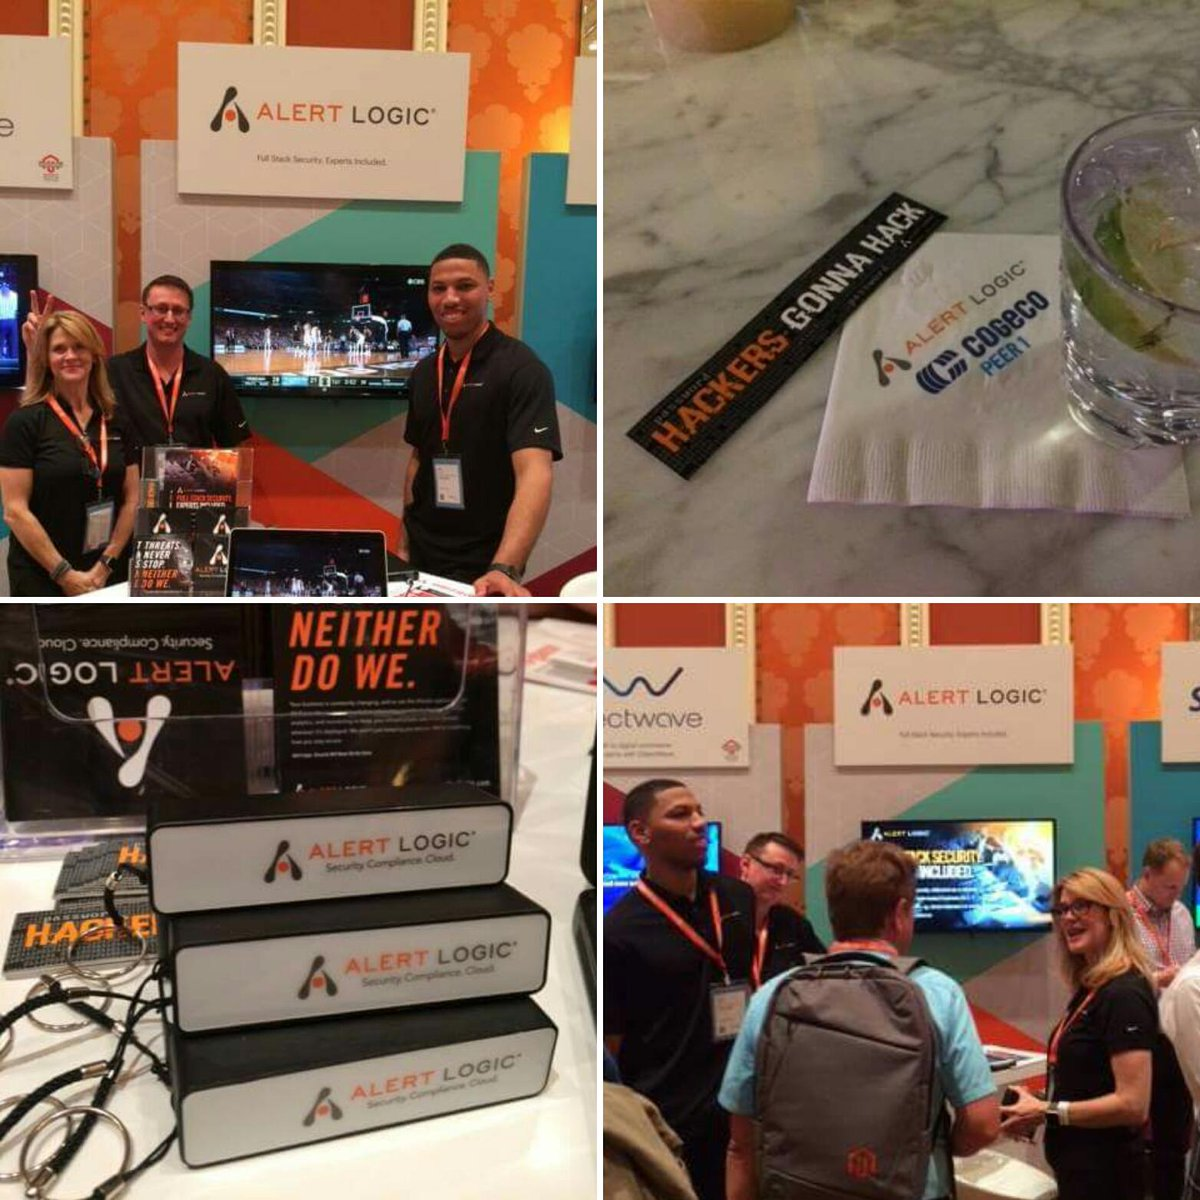 alertlogic: Attending #MagentoImagine? Stop by booth 31 to learn more about protecting customer data with security-as-a-service. https://t.co/cTWpXwXqBS